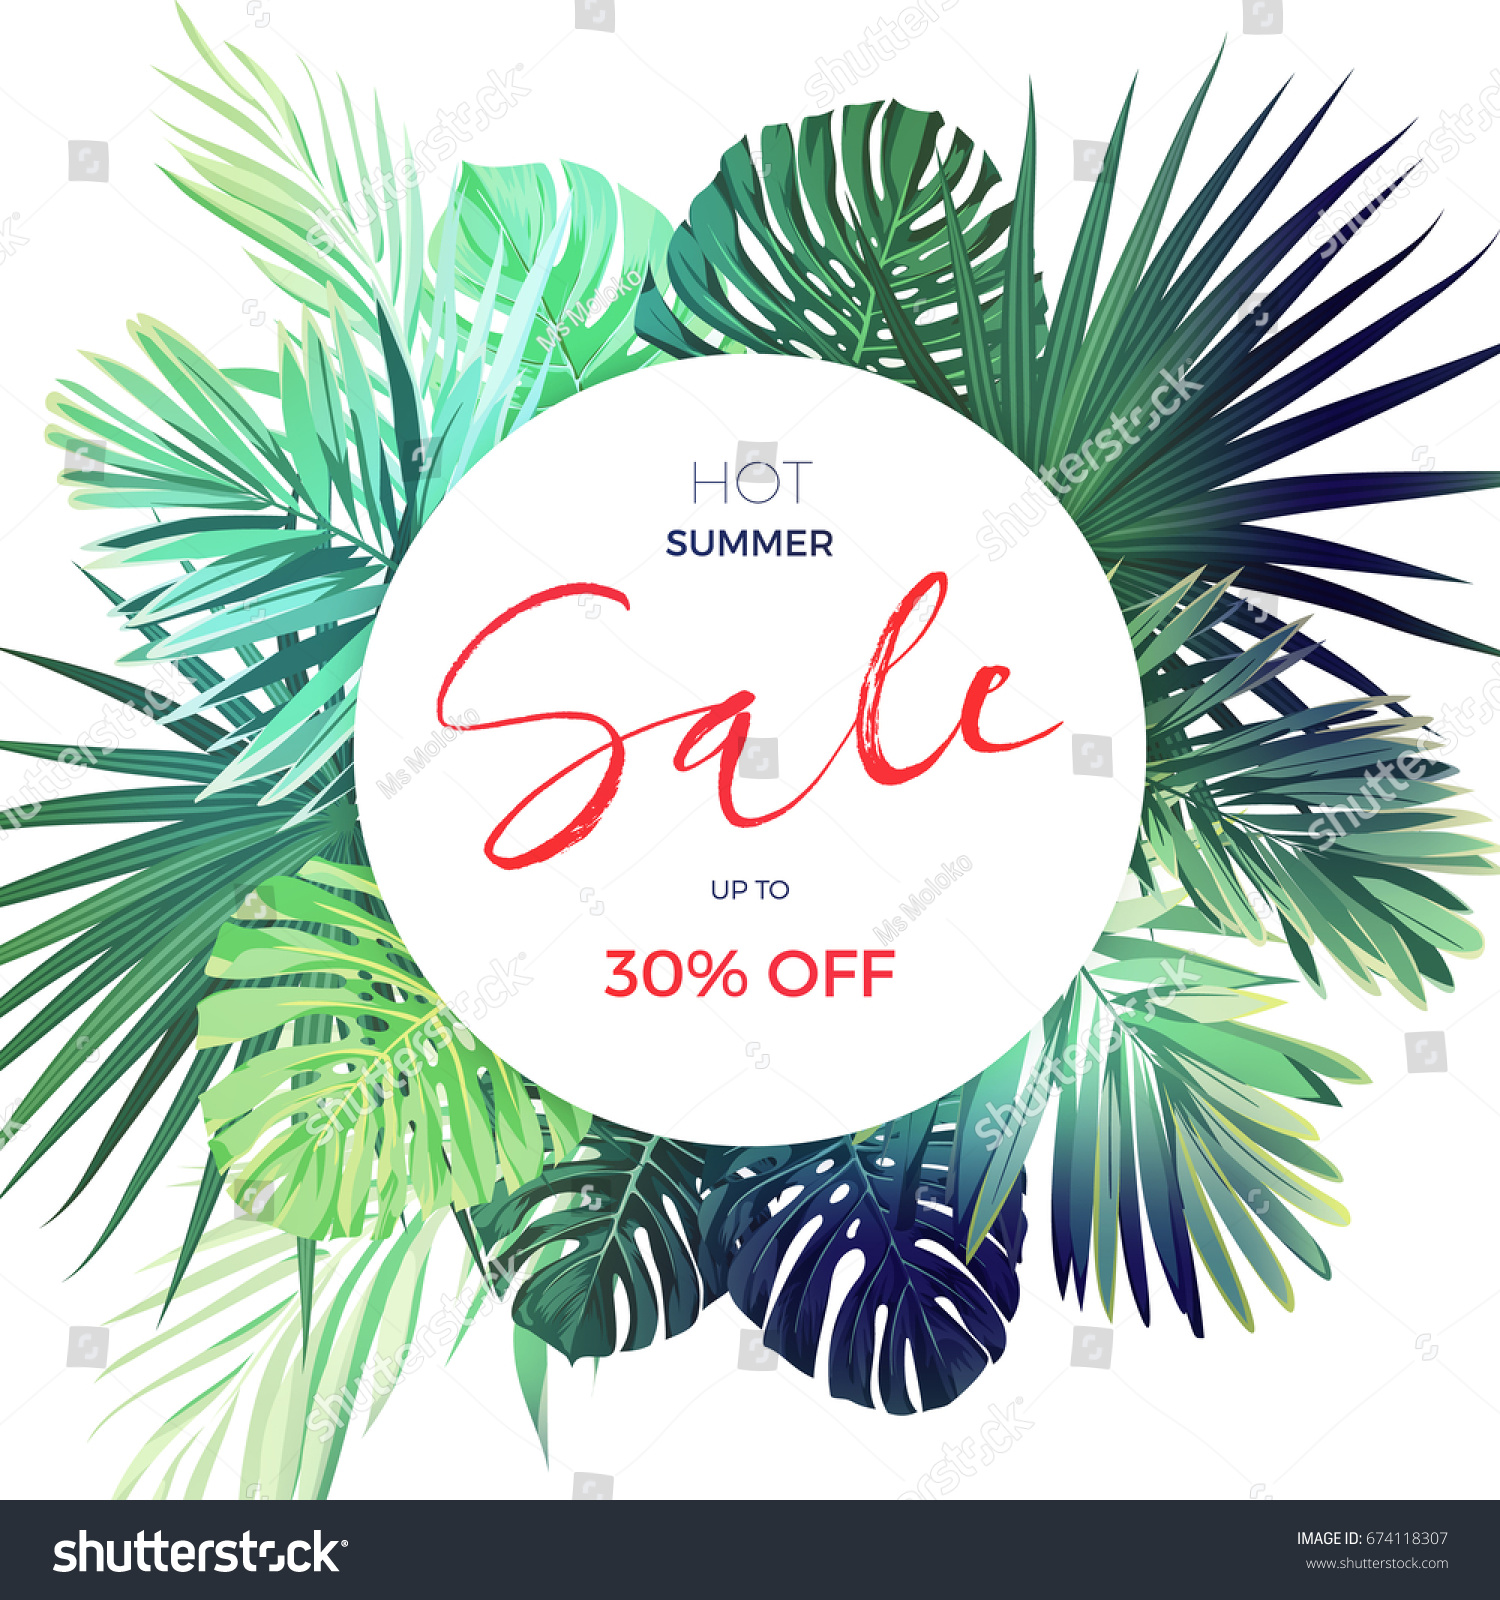 Green Botanical Summer Tropical Sale Flyer Ilustración de ...